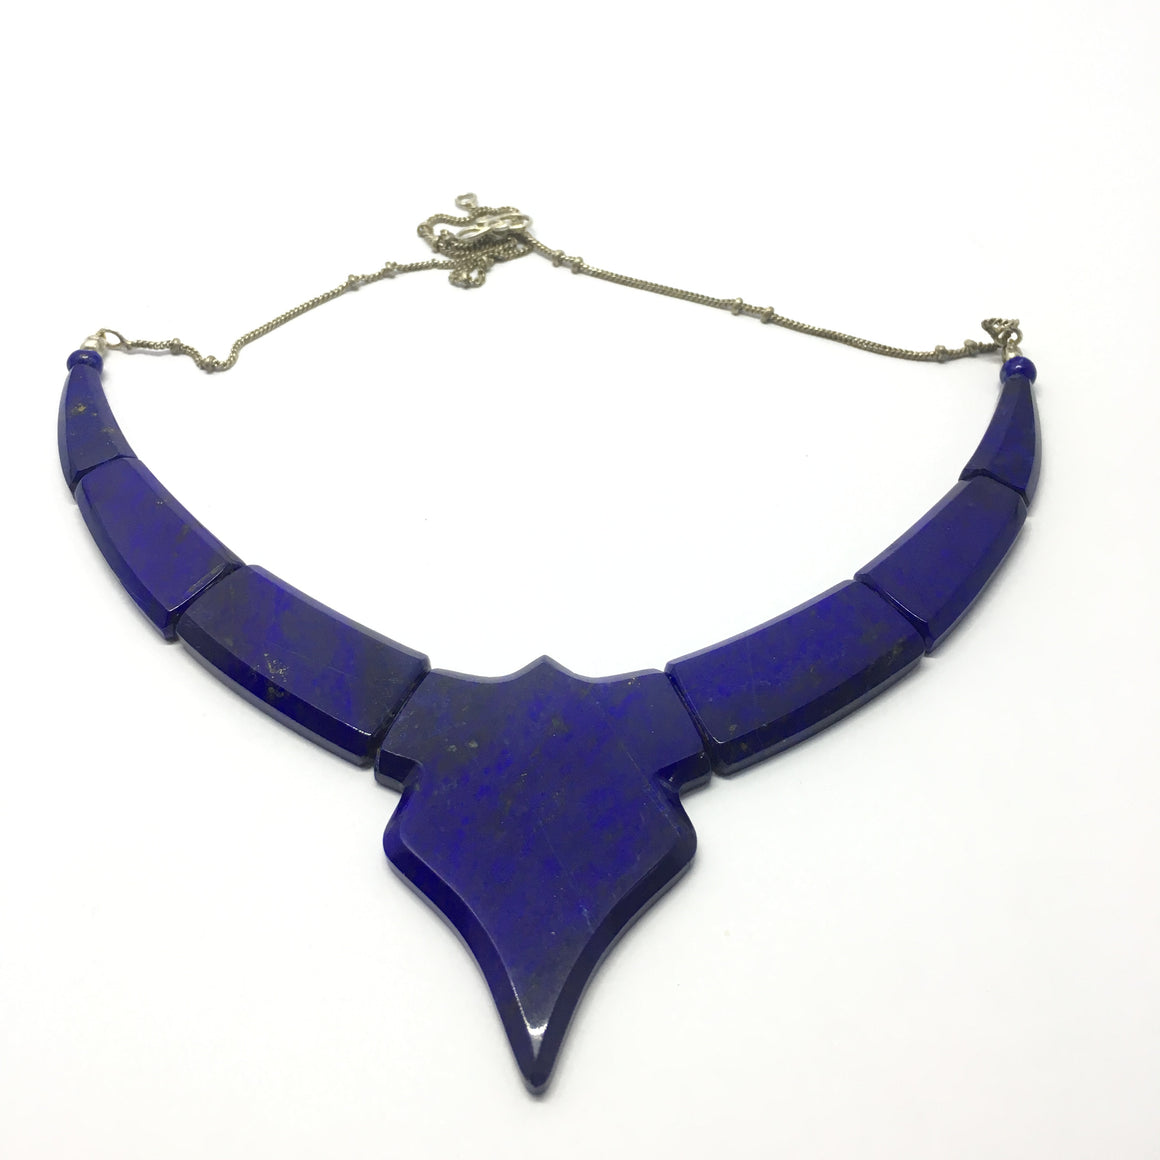 Lapis Lazuli Necklace - Lapis Designed Necklace - 150.5 Carat